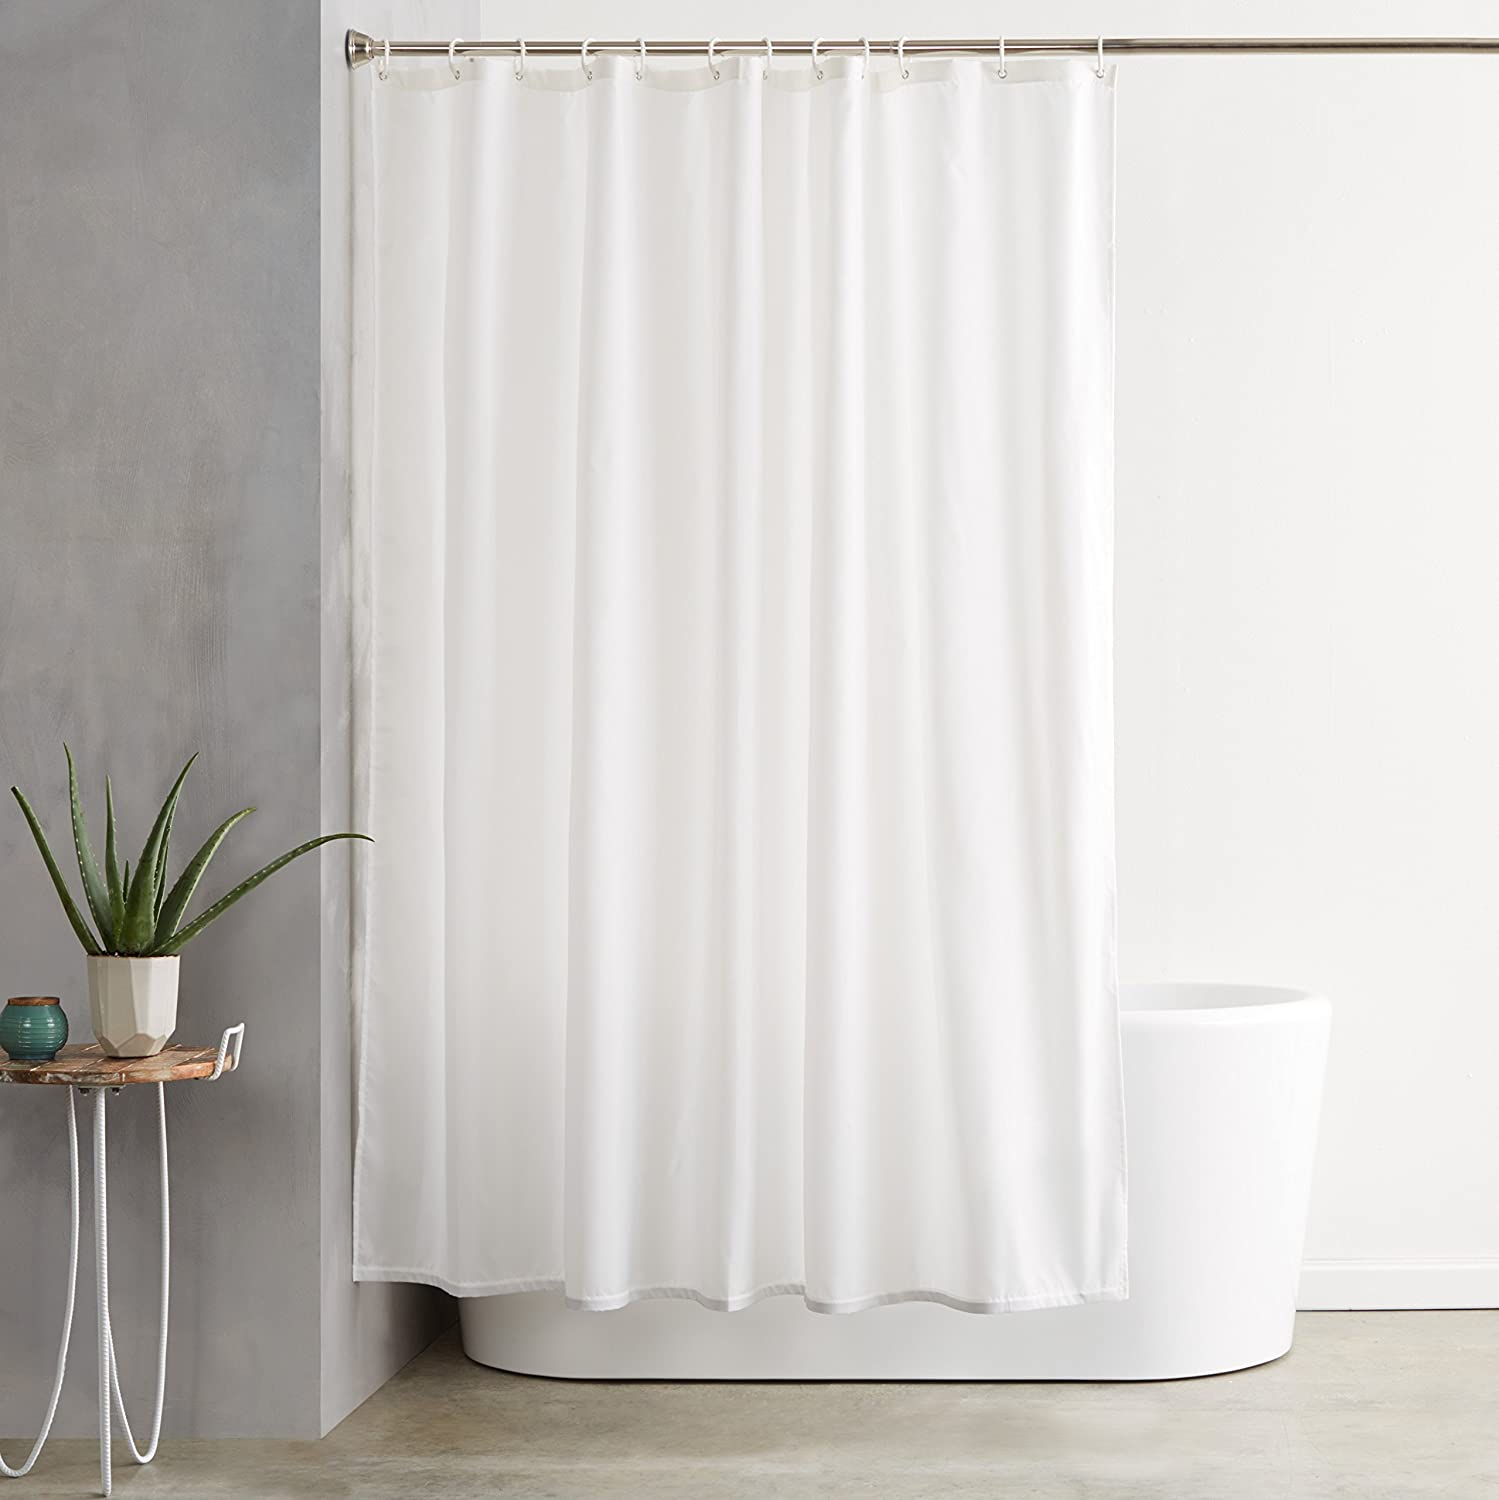 Peva Shower Curtain Mono Spots Grey Black By Beamfeature